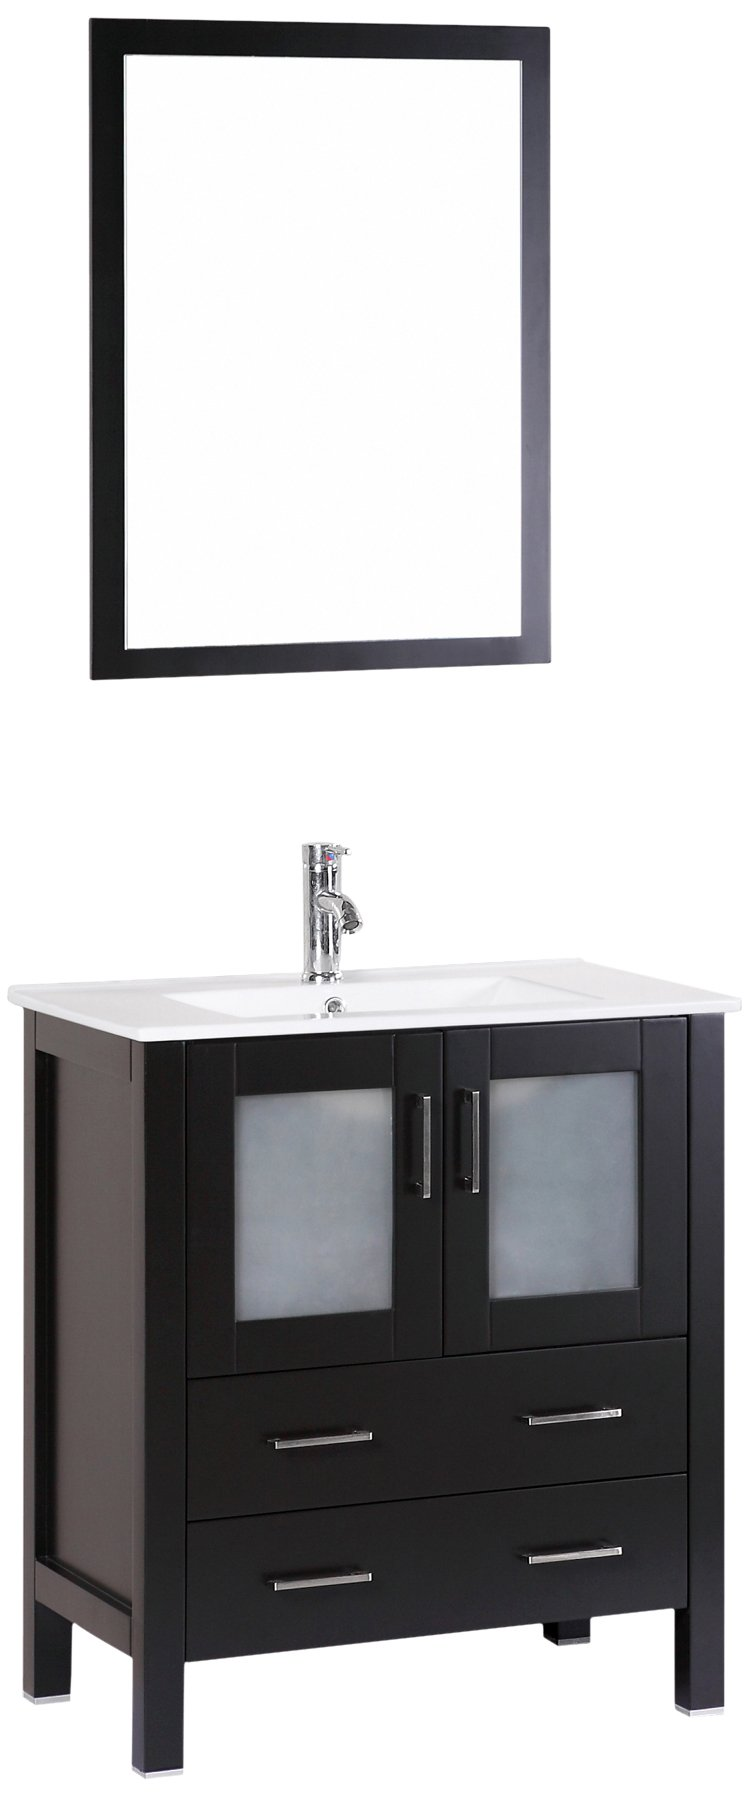 Bosconi Bathroom Vanities 30'' Classic Single Vanity With Integrated Rectangular Sink, Countertop, Cabinet, 2 Drawers, And Mirror, Espresso/Ceramic